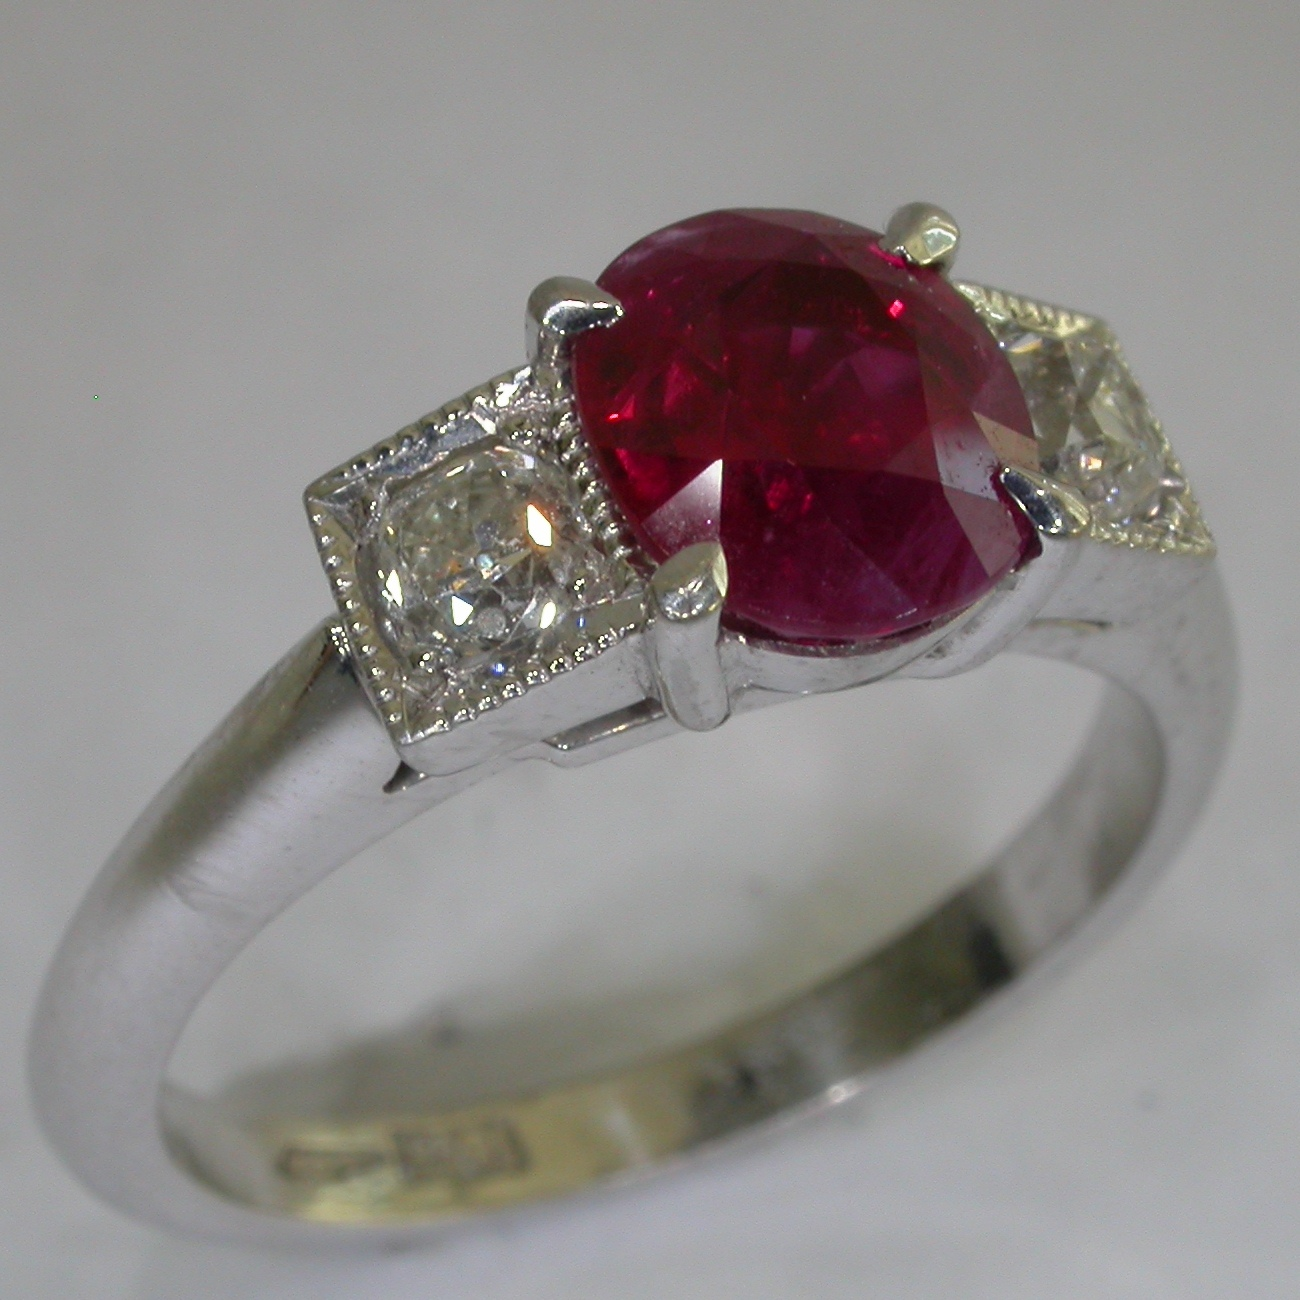 Colour Stone Rings - #6865